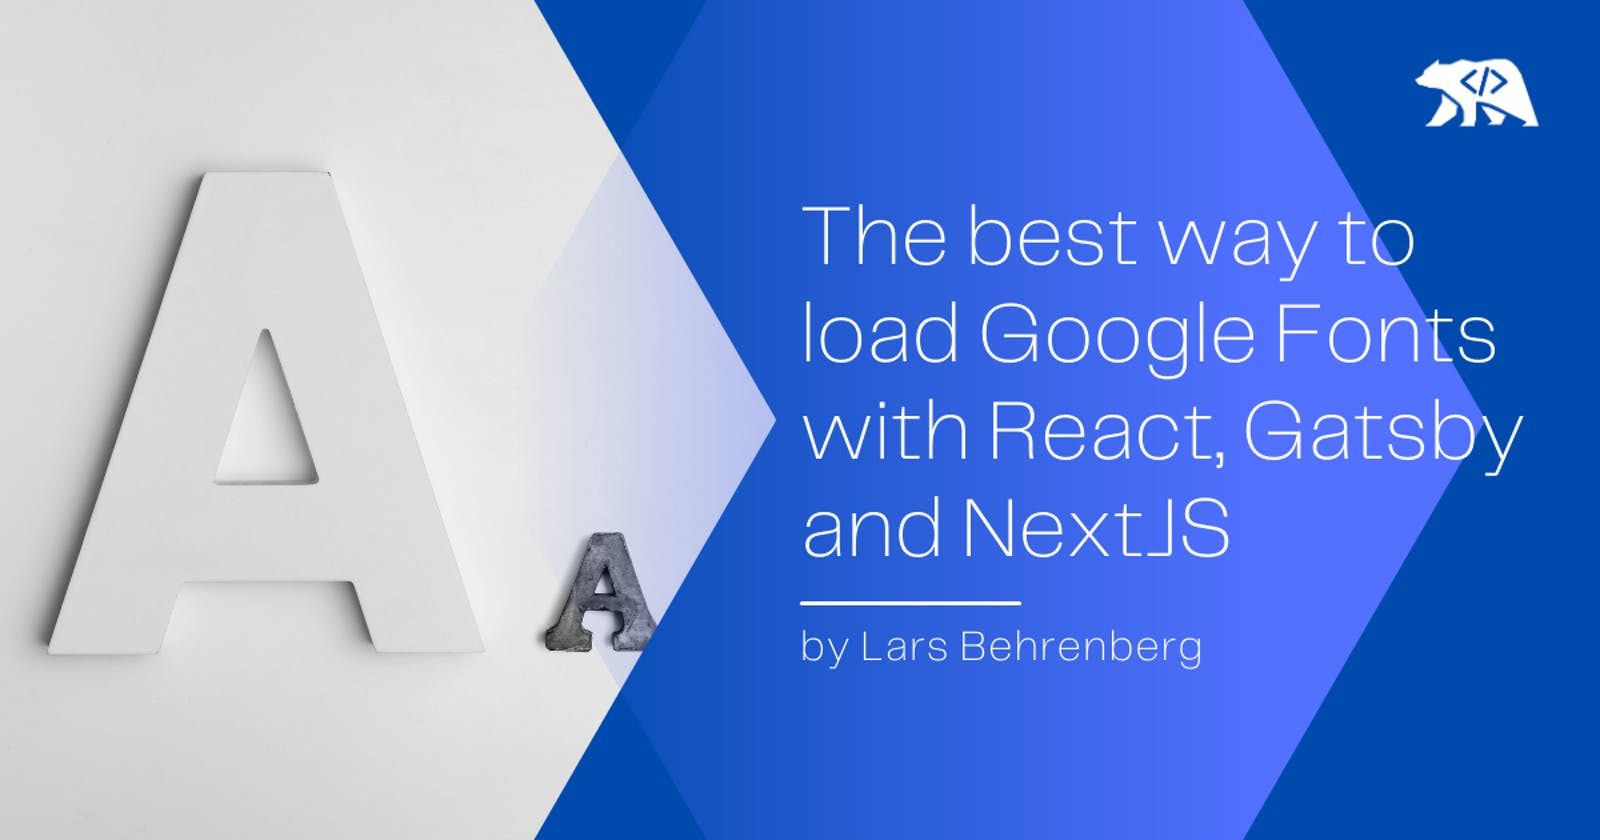 The best way to load and use Google Fonts with React, Gatsby and NextJS